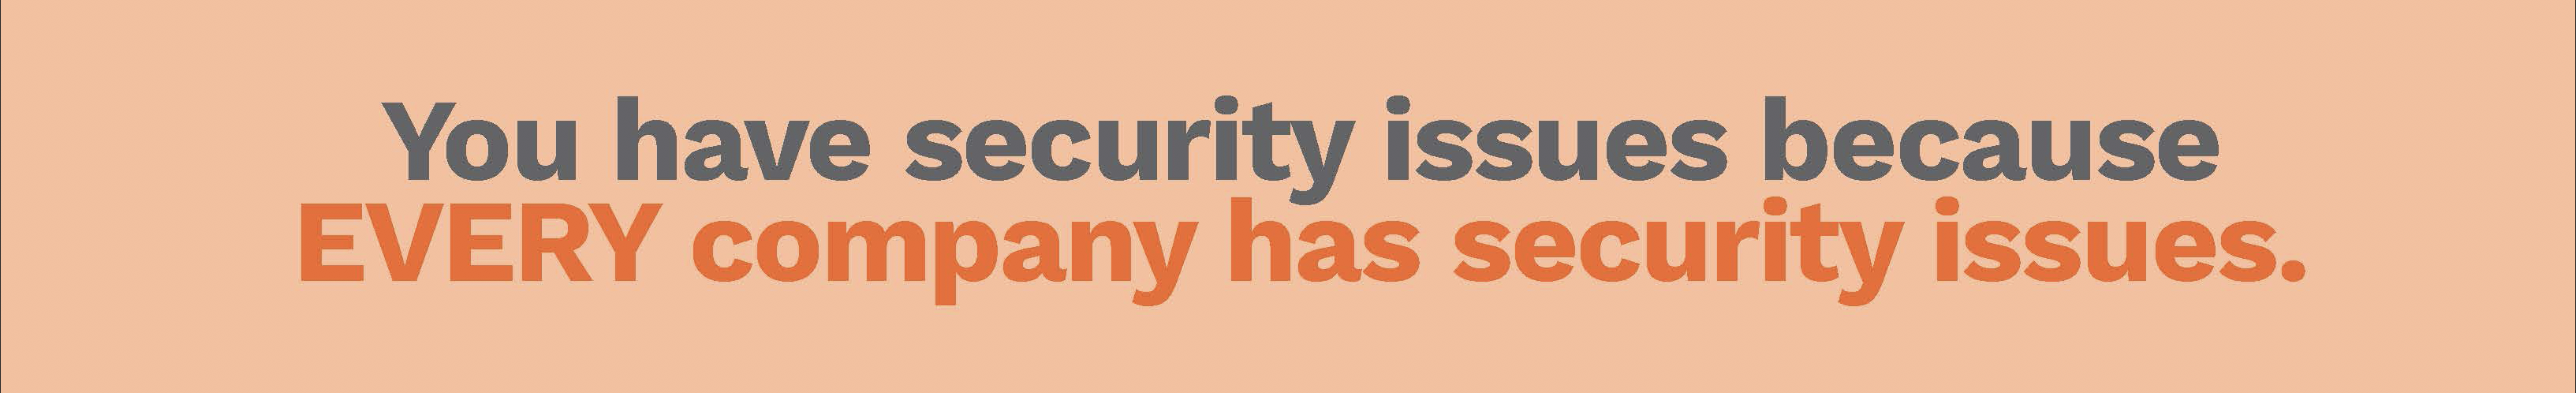 Free eBook 6 security issues every SMB needs to understand